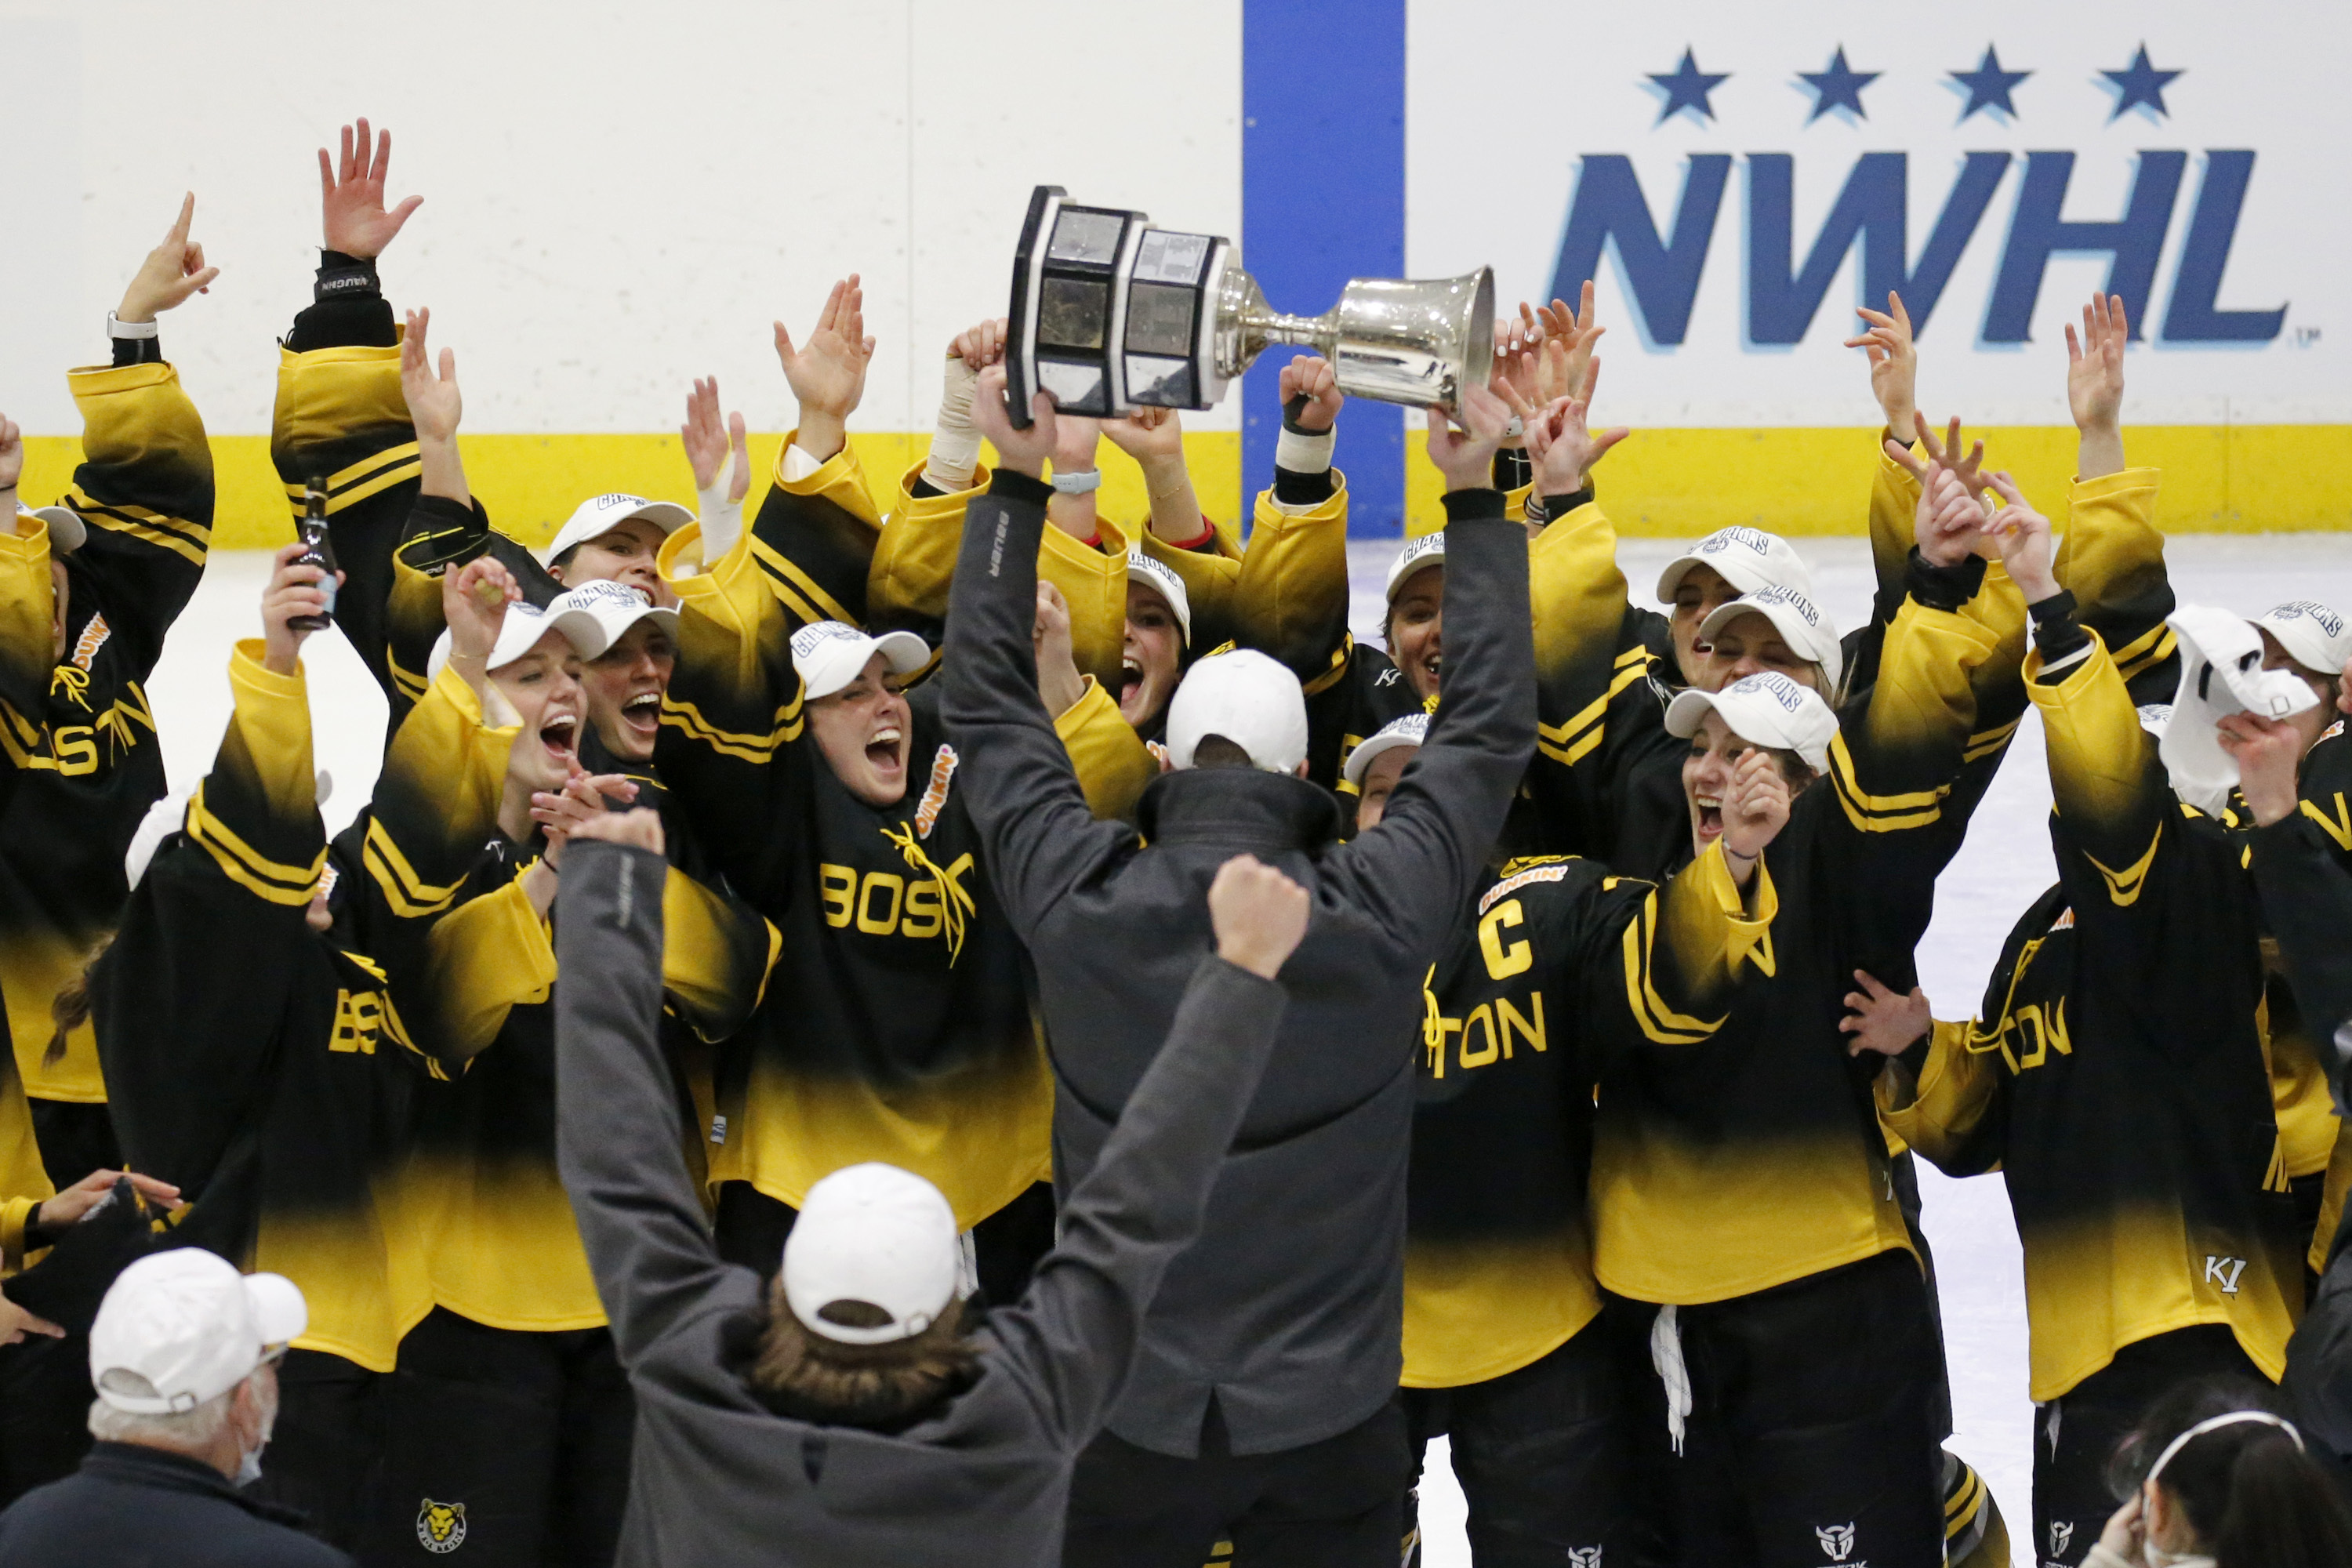 The Boston Pride, two-time Isobel Cup winners, are preparing a title defense for 2021-22.